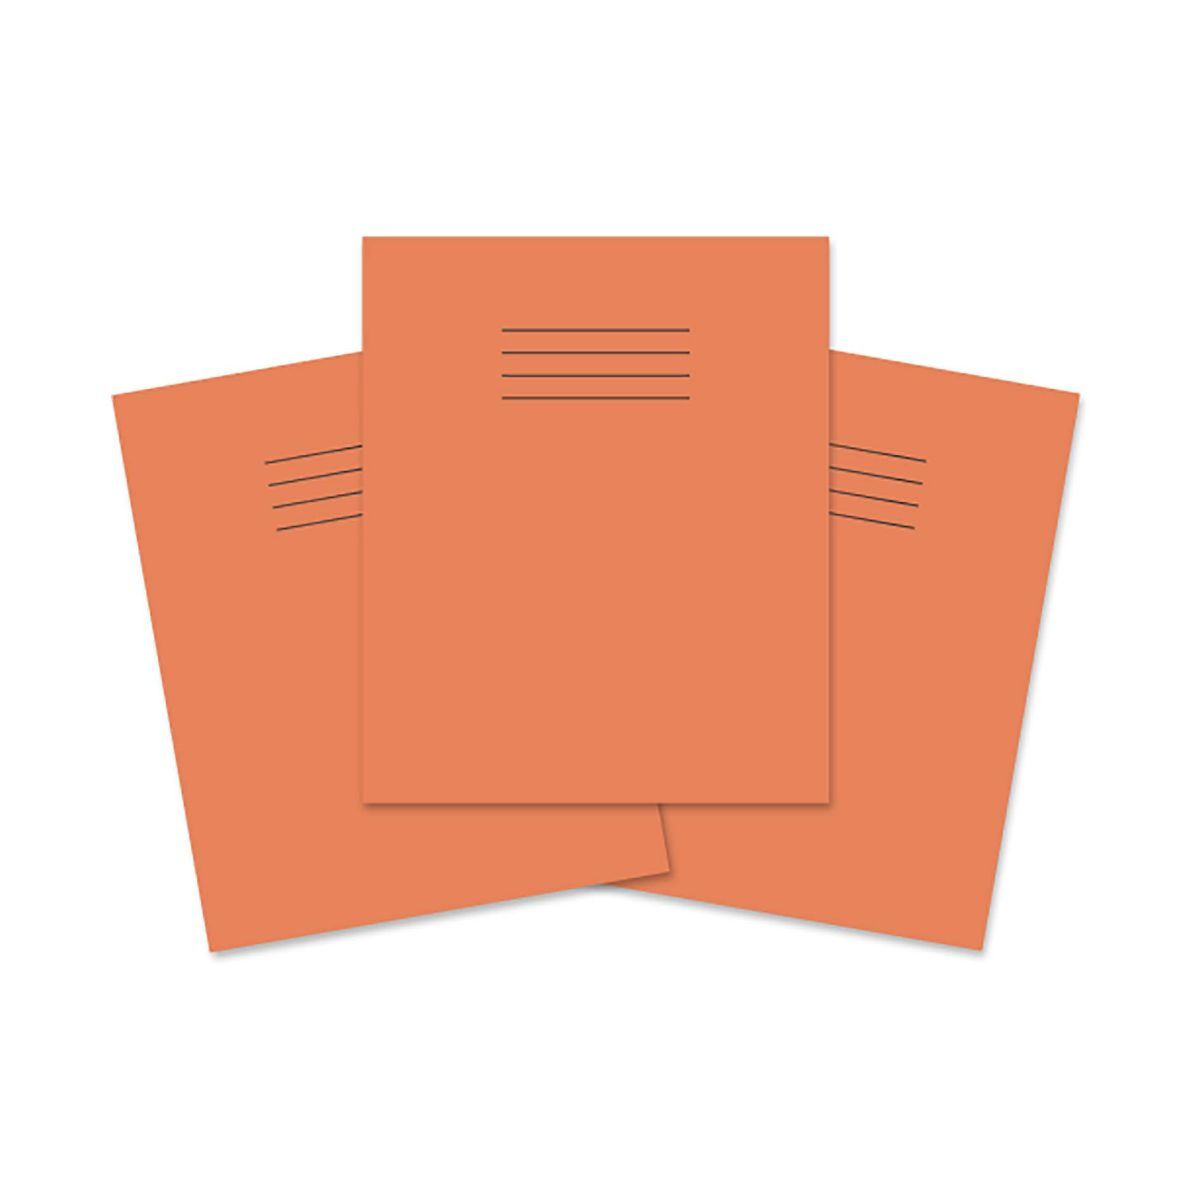 Rhino Exercise Book 8 inch x 6.5 Inch 48 Pages 7mm Squares Pack of 100 Orange